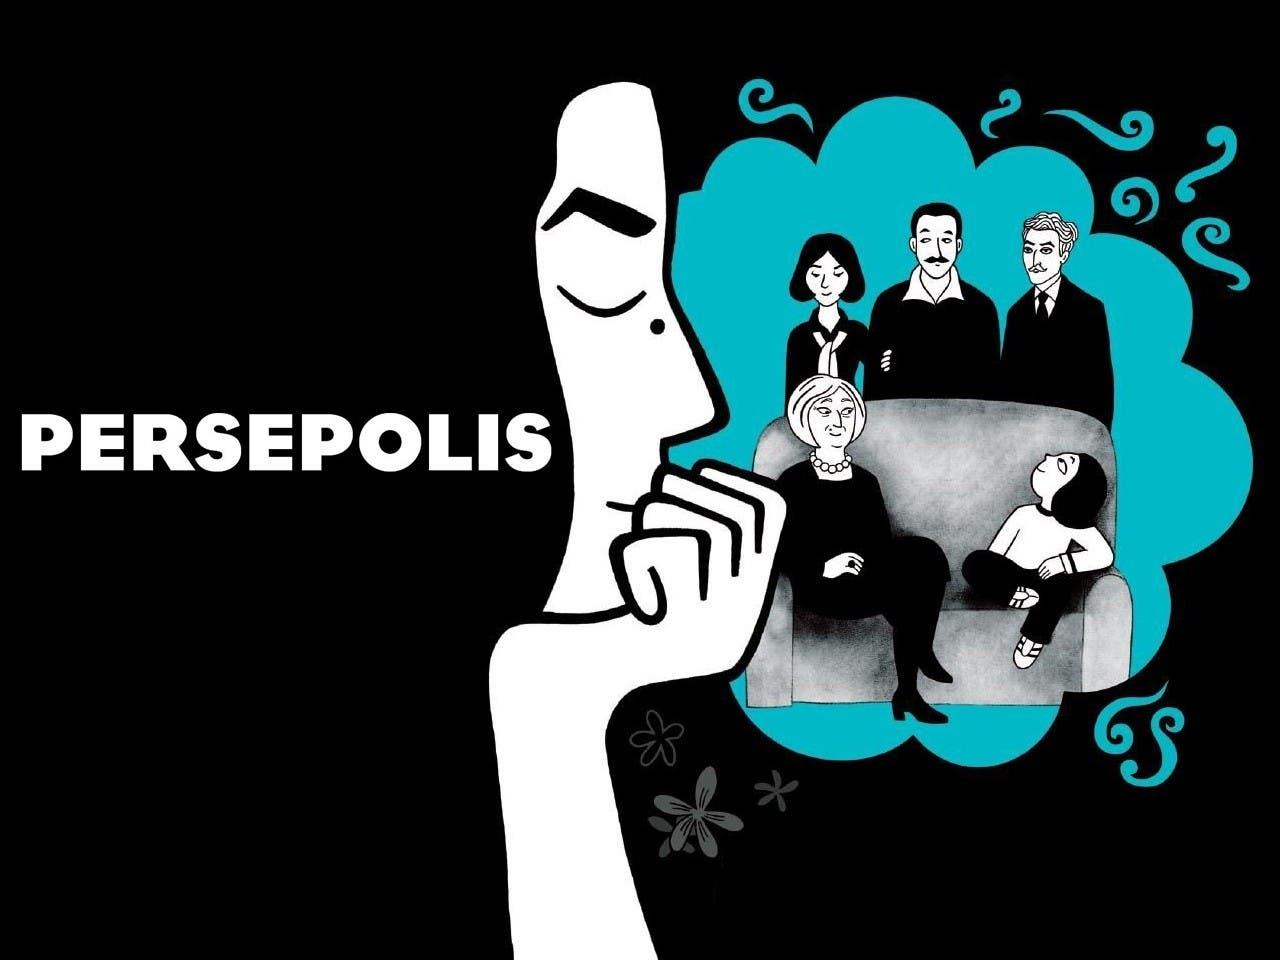 The Franco-Iranian film Persepolis nearly landed a Tunisian director three years in Jail